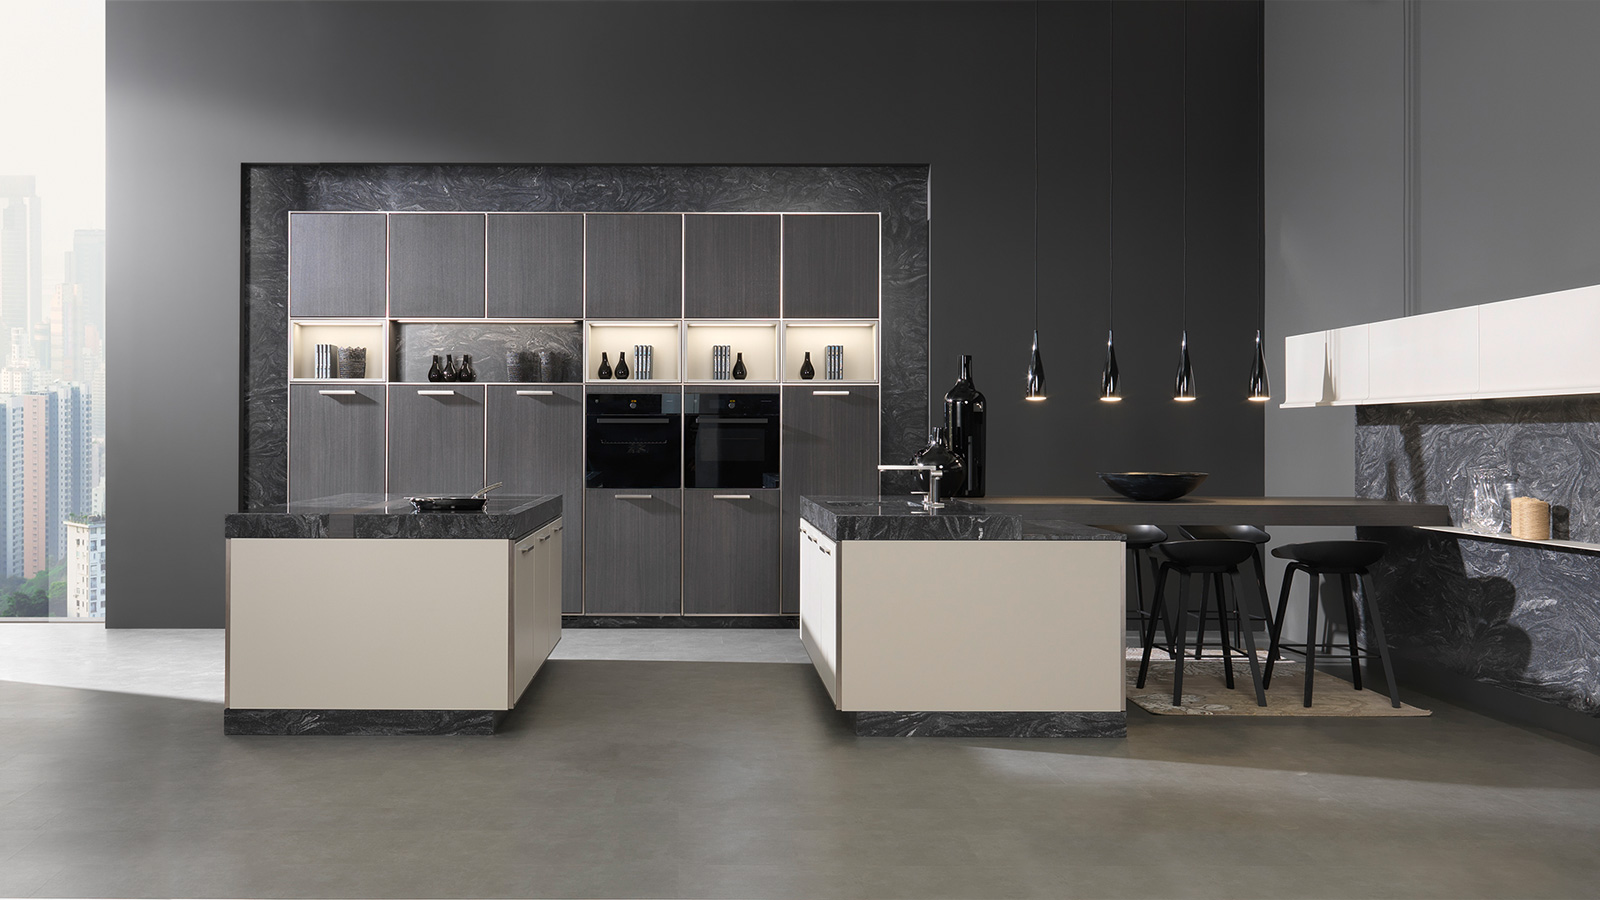 Rational unveils two ranges for 2019